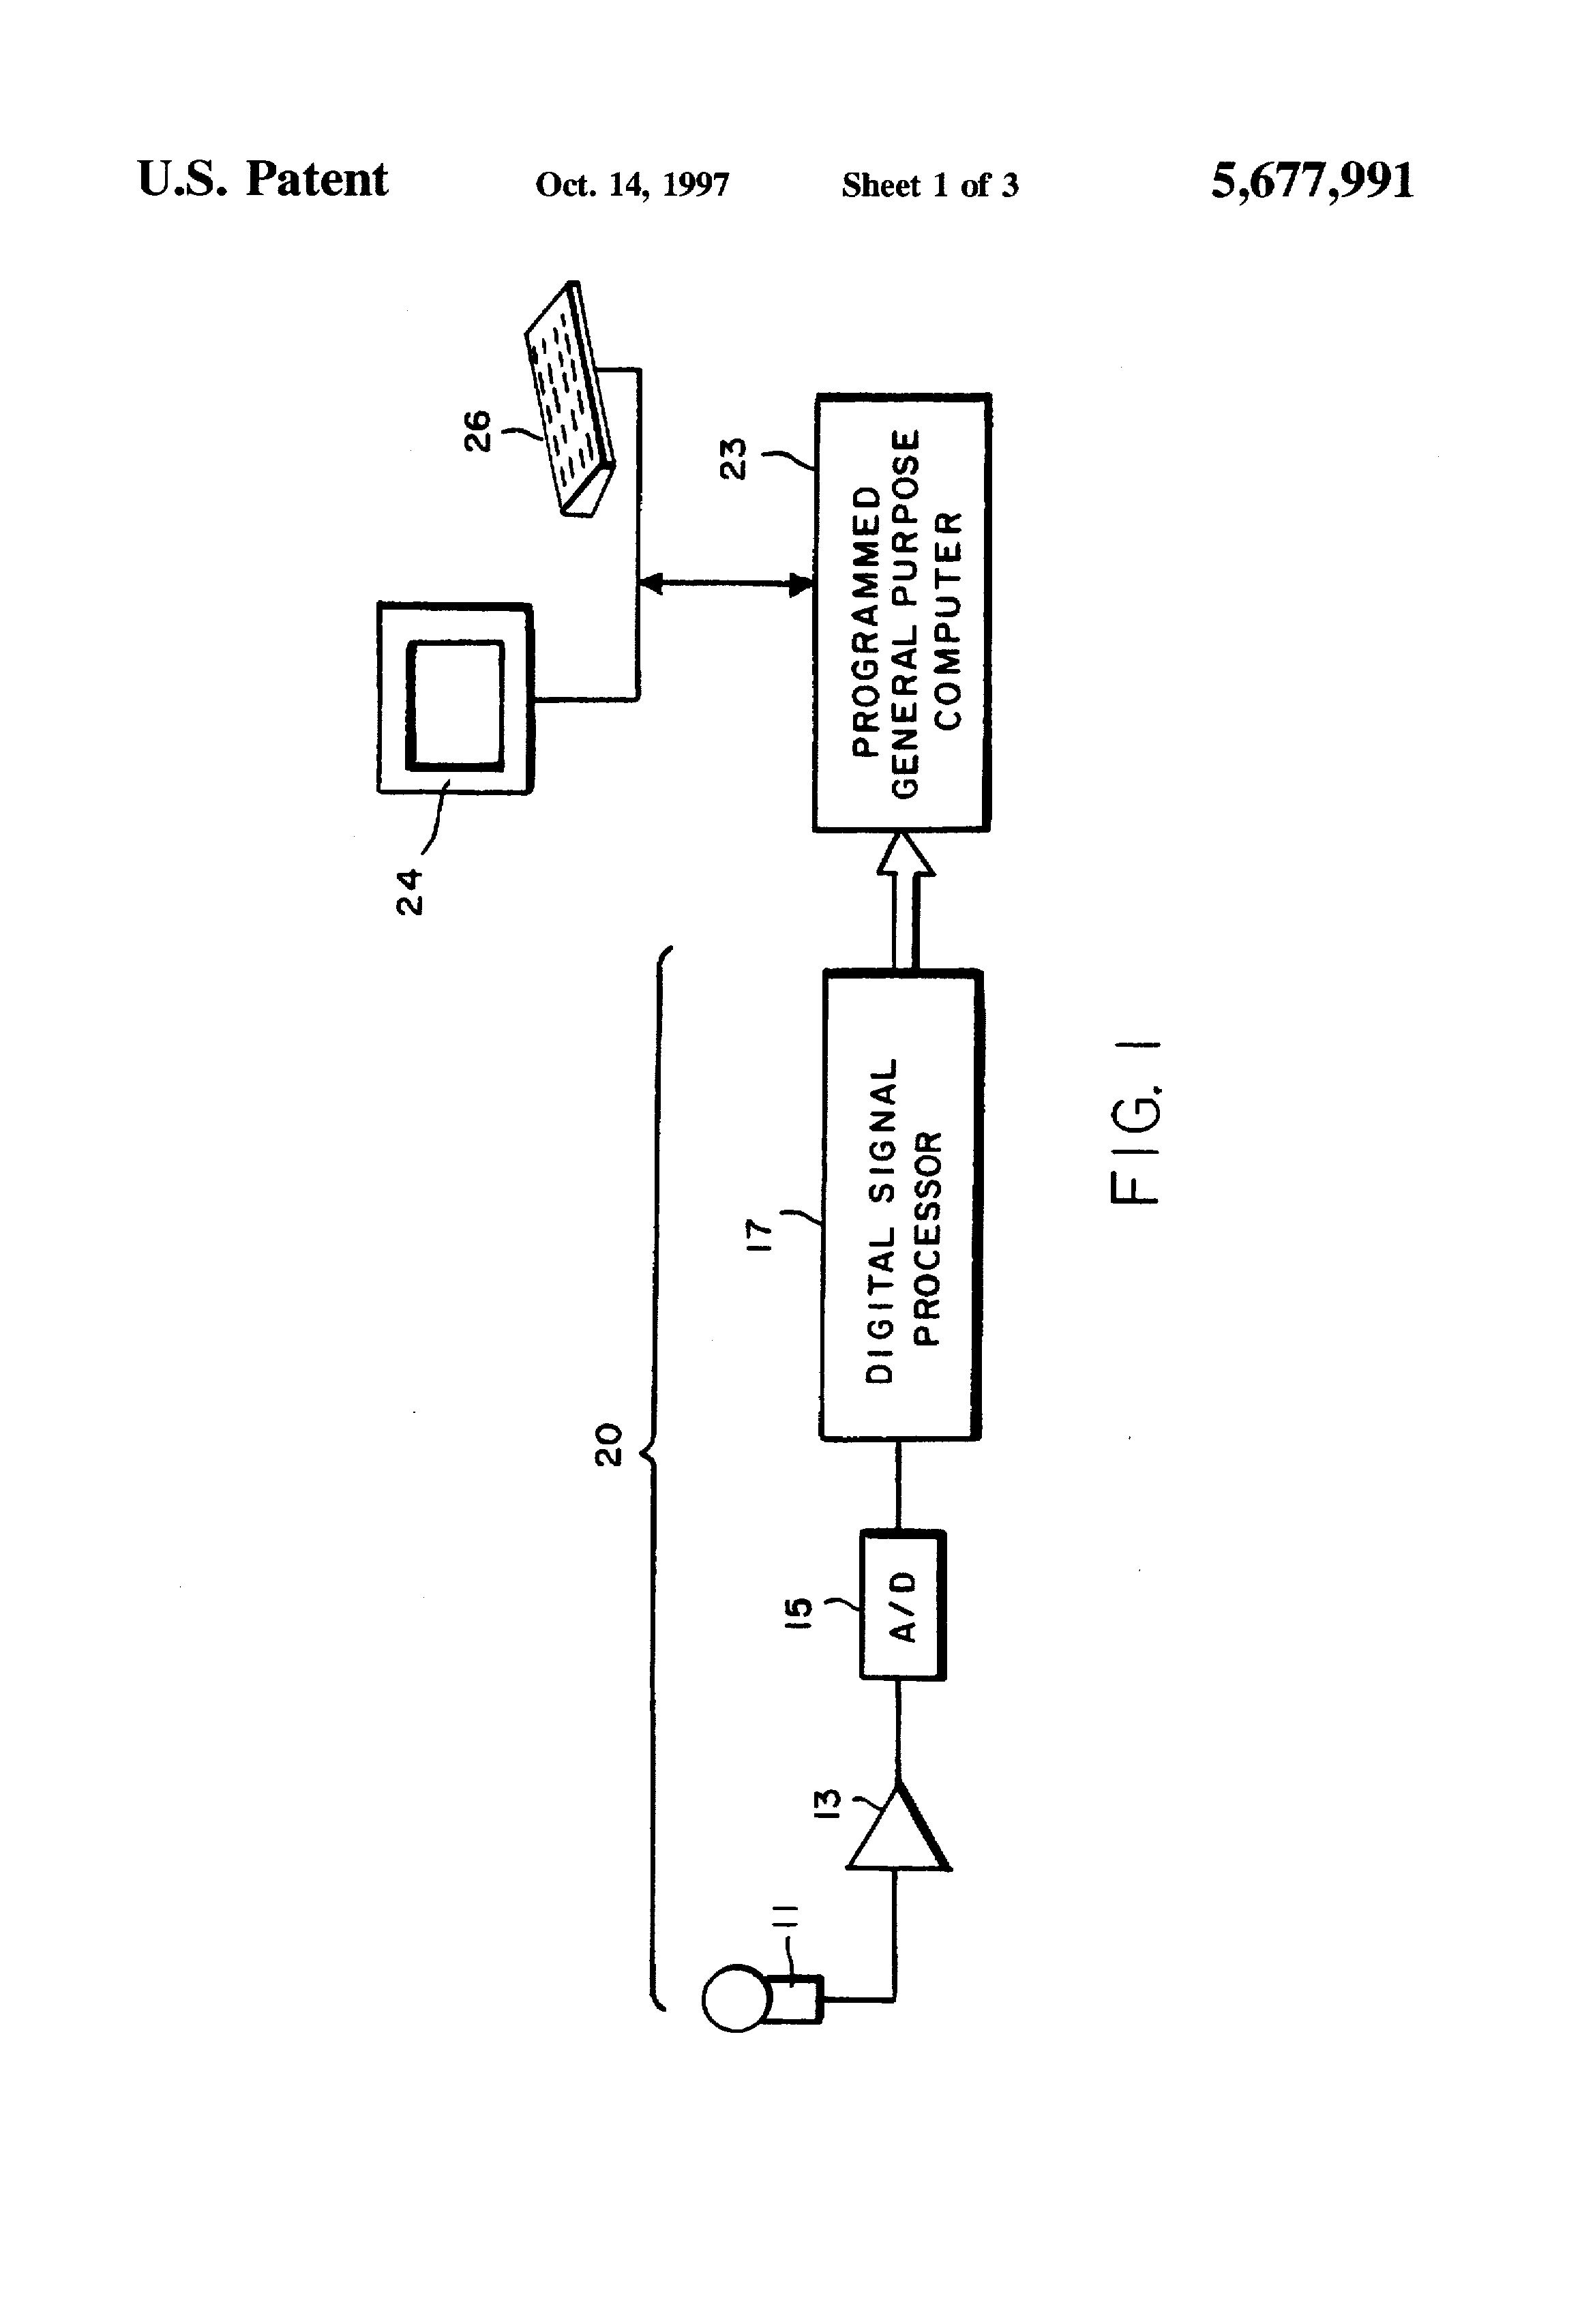 US 5677991 A - Speech Recognition System Using Arbitration